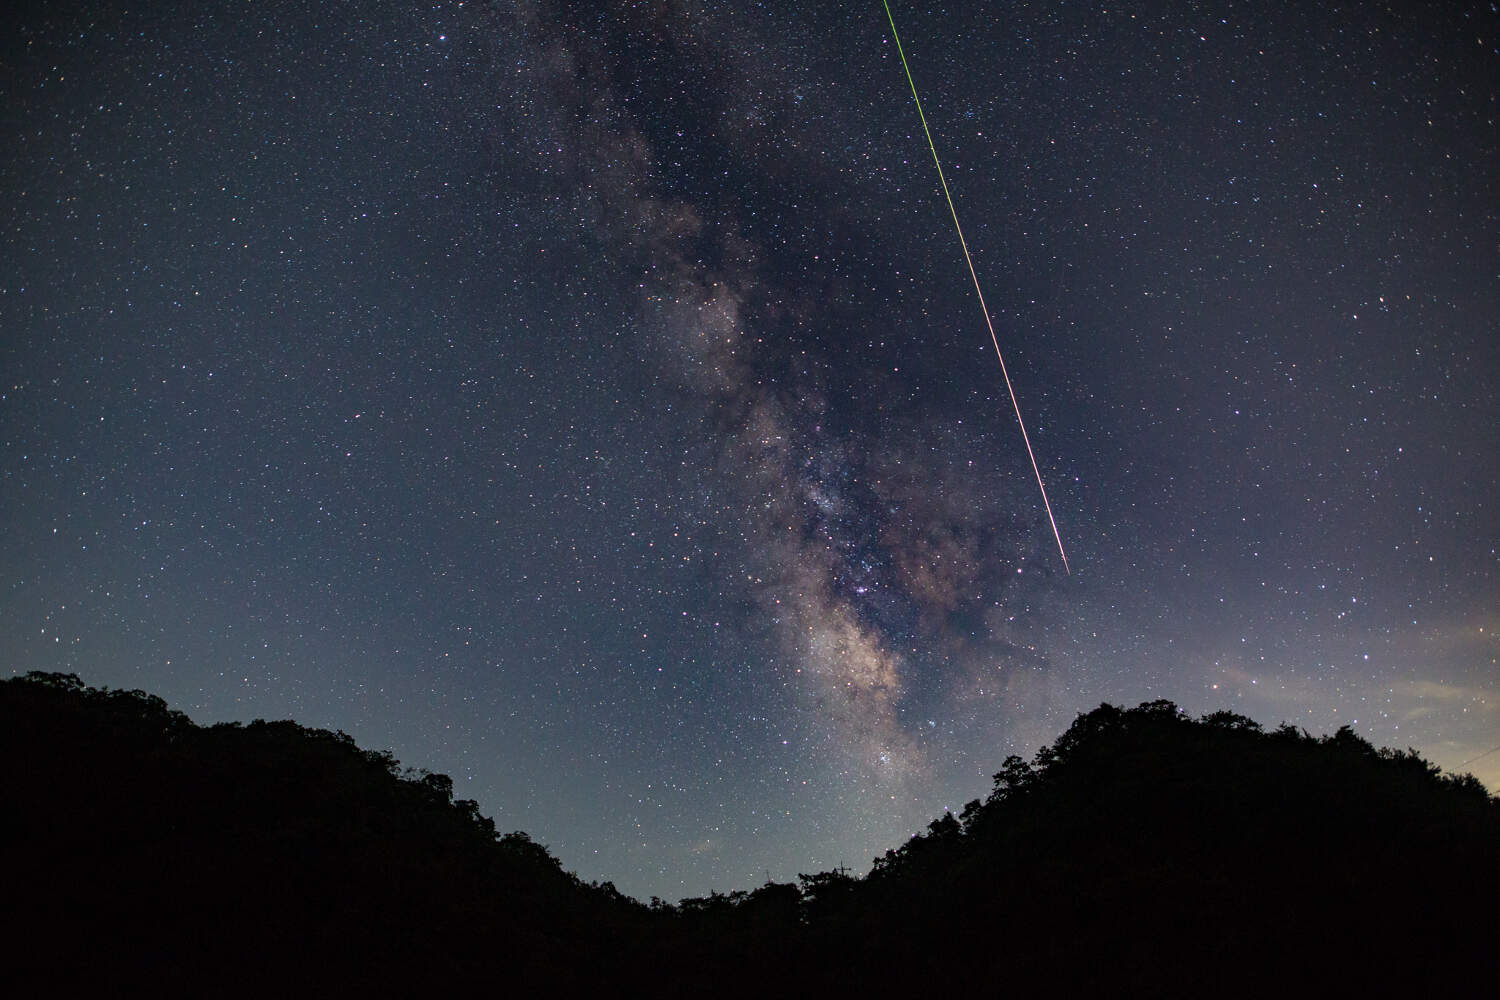 Stay up Late for the Perseids Meteor Shower Pajama Party at the Garden on August 9